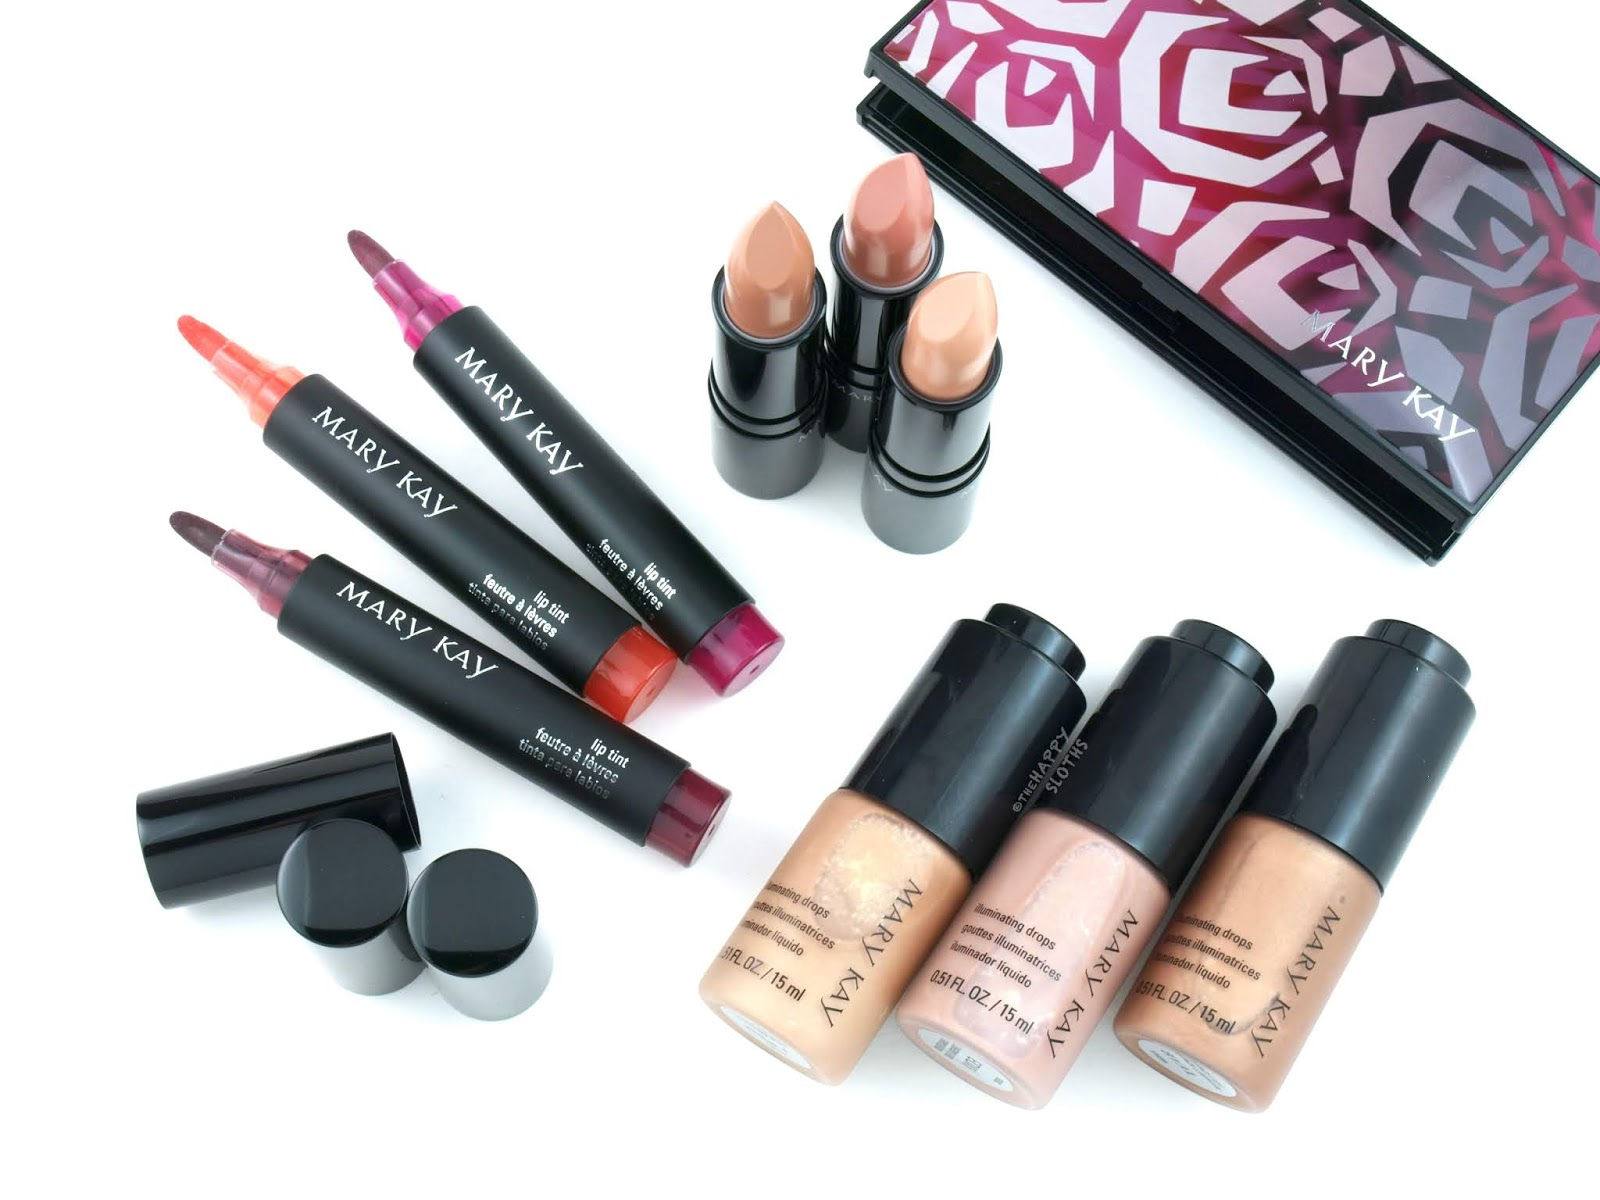 Mary Kay Spring 2020.Mary Kay Spring 2019 Collection Review And Swatches The